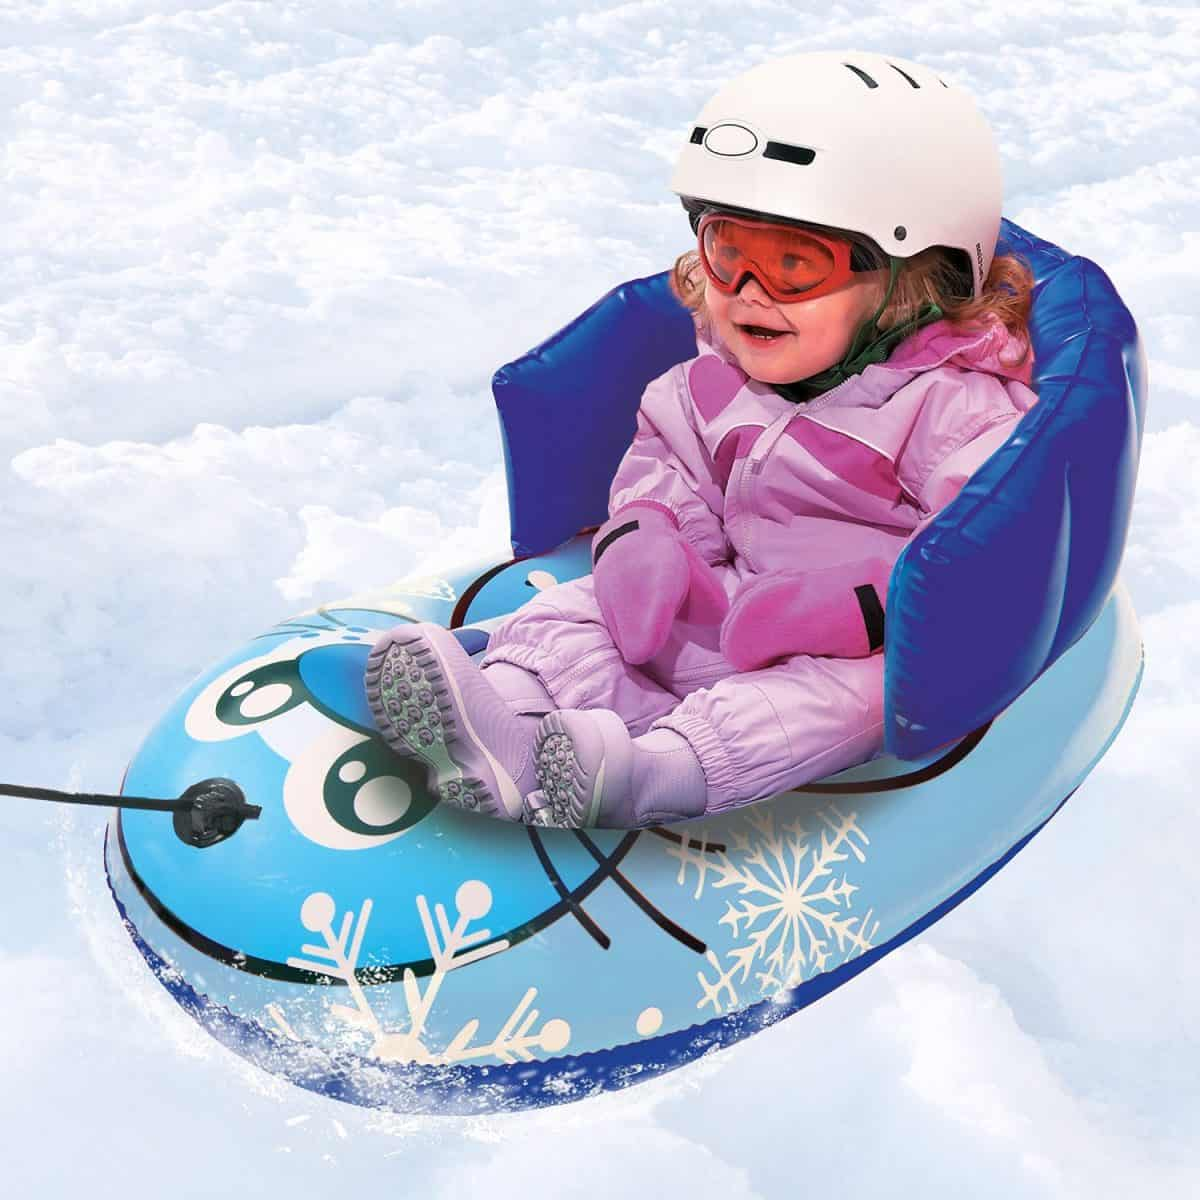 best sleds for toddlers snow fun for the littlest riders. Black Bedroom Furniture Sets. Home Design Ideas